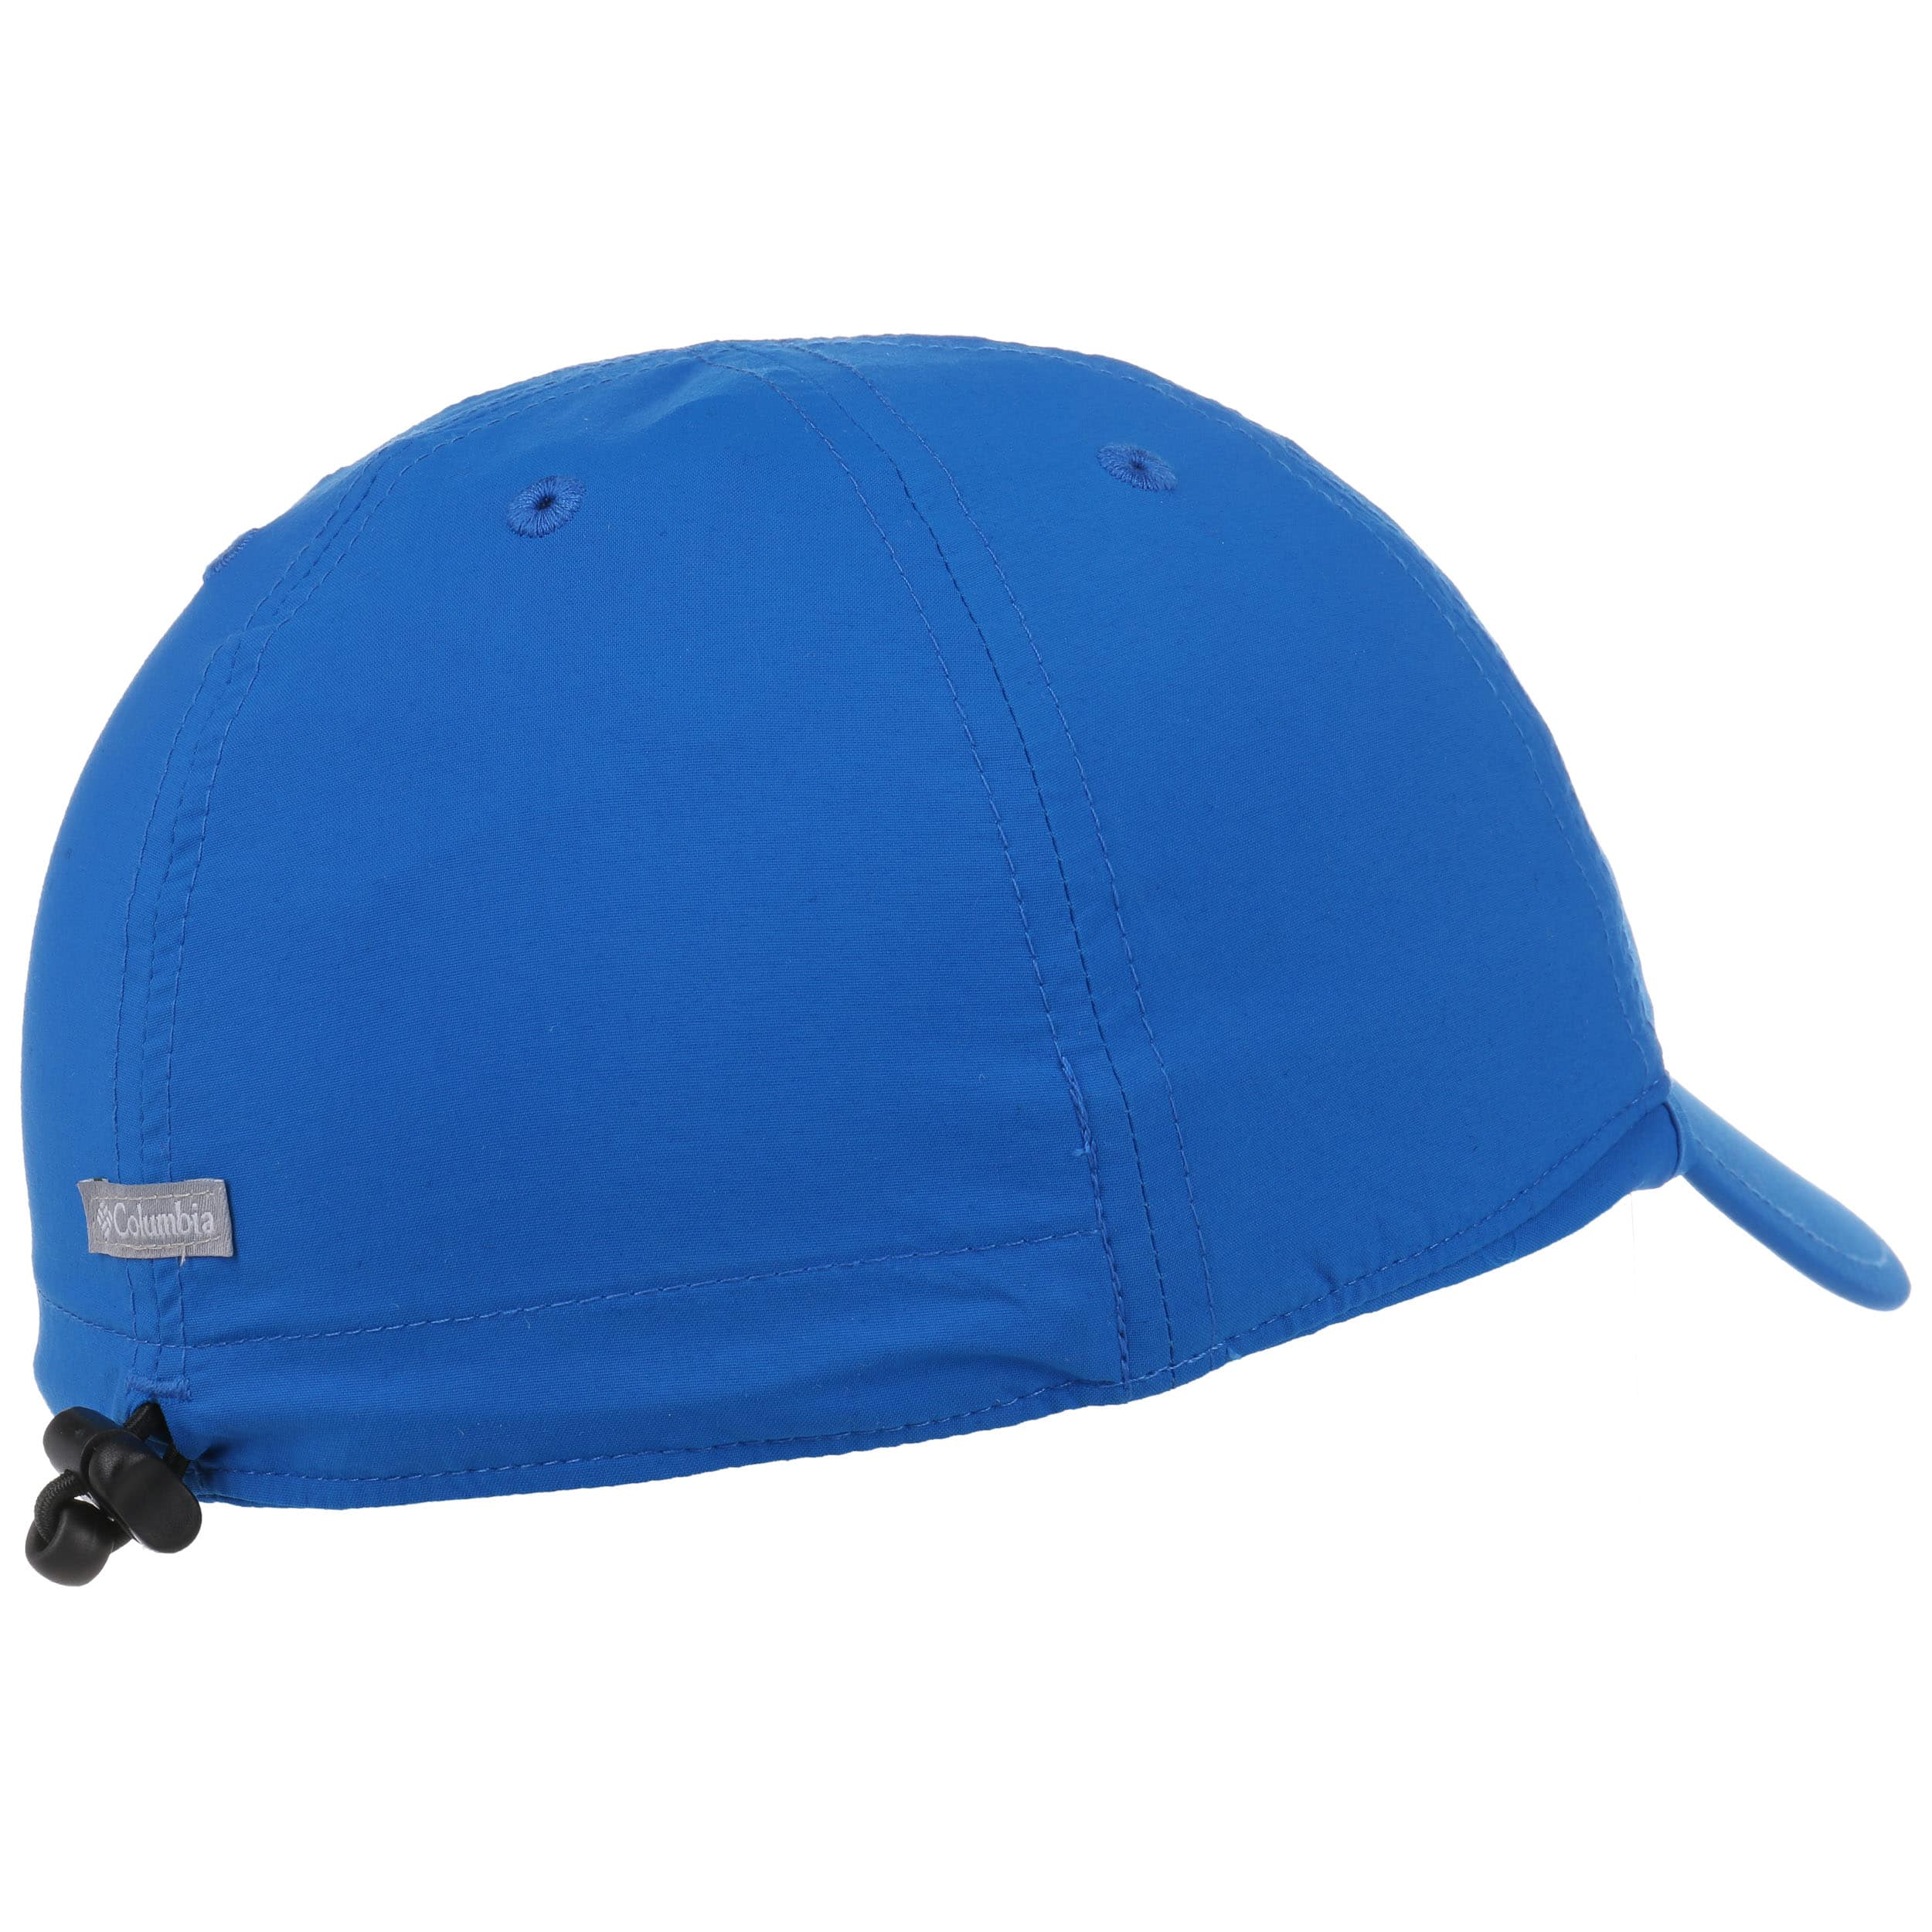 Gorra Cachalot Junior High UV by Columbia - Gorras - sombreroshop.es de84da79a81